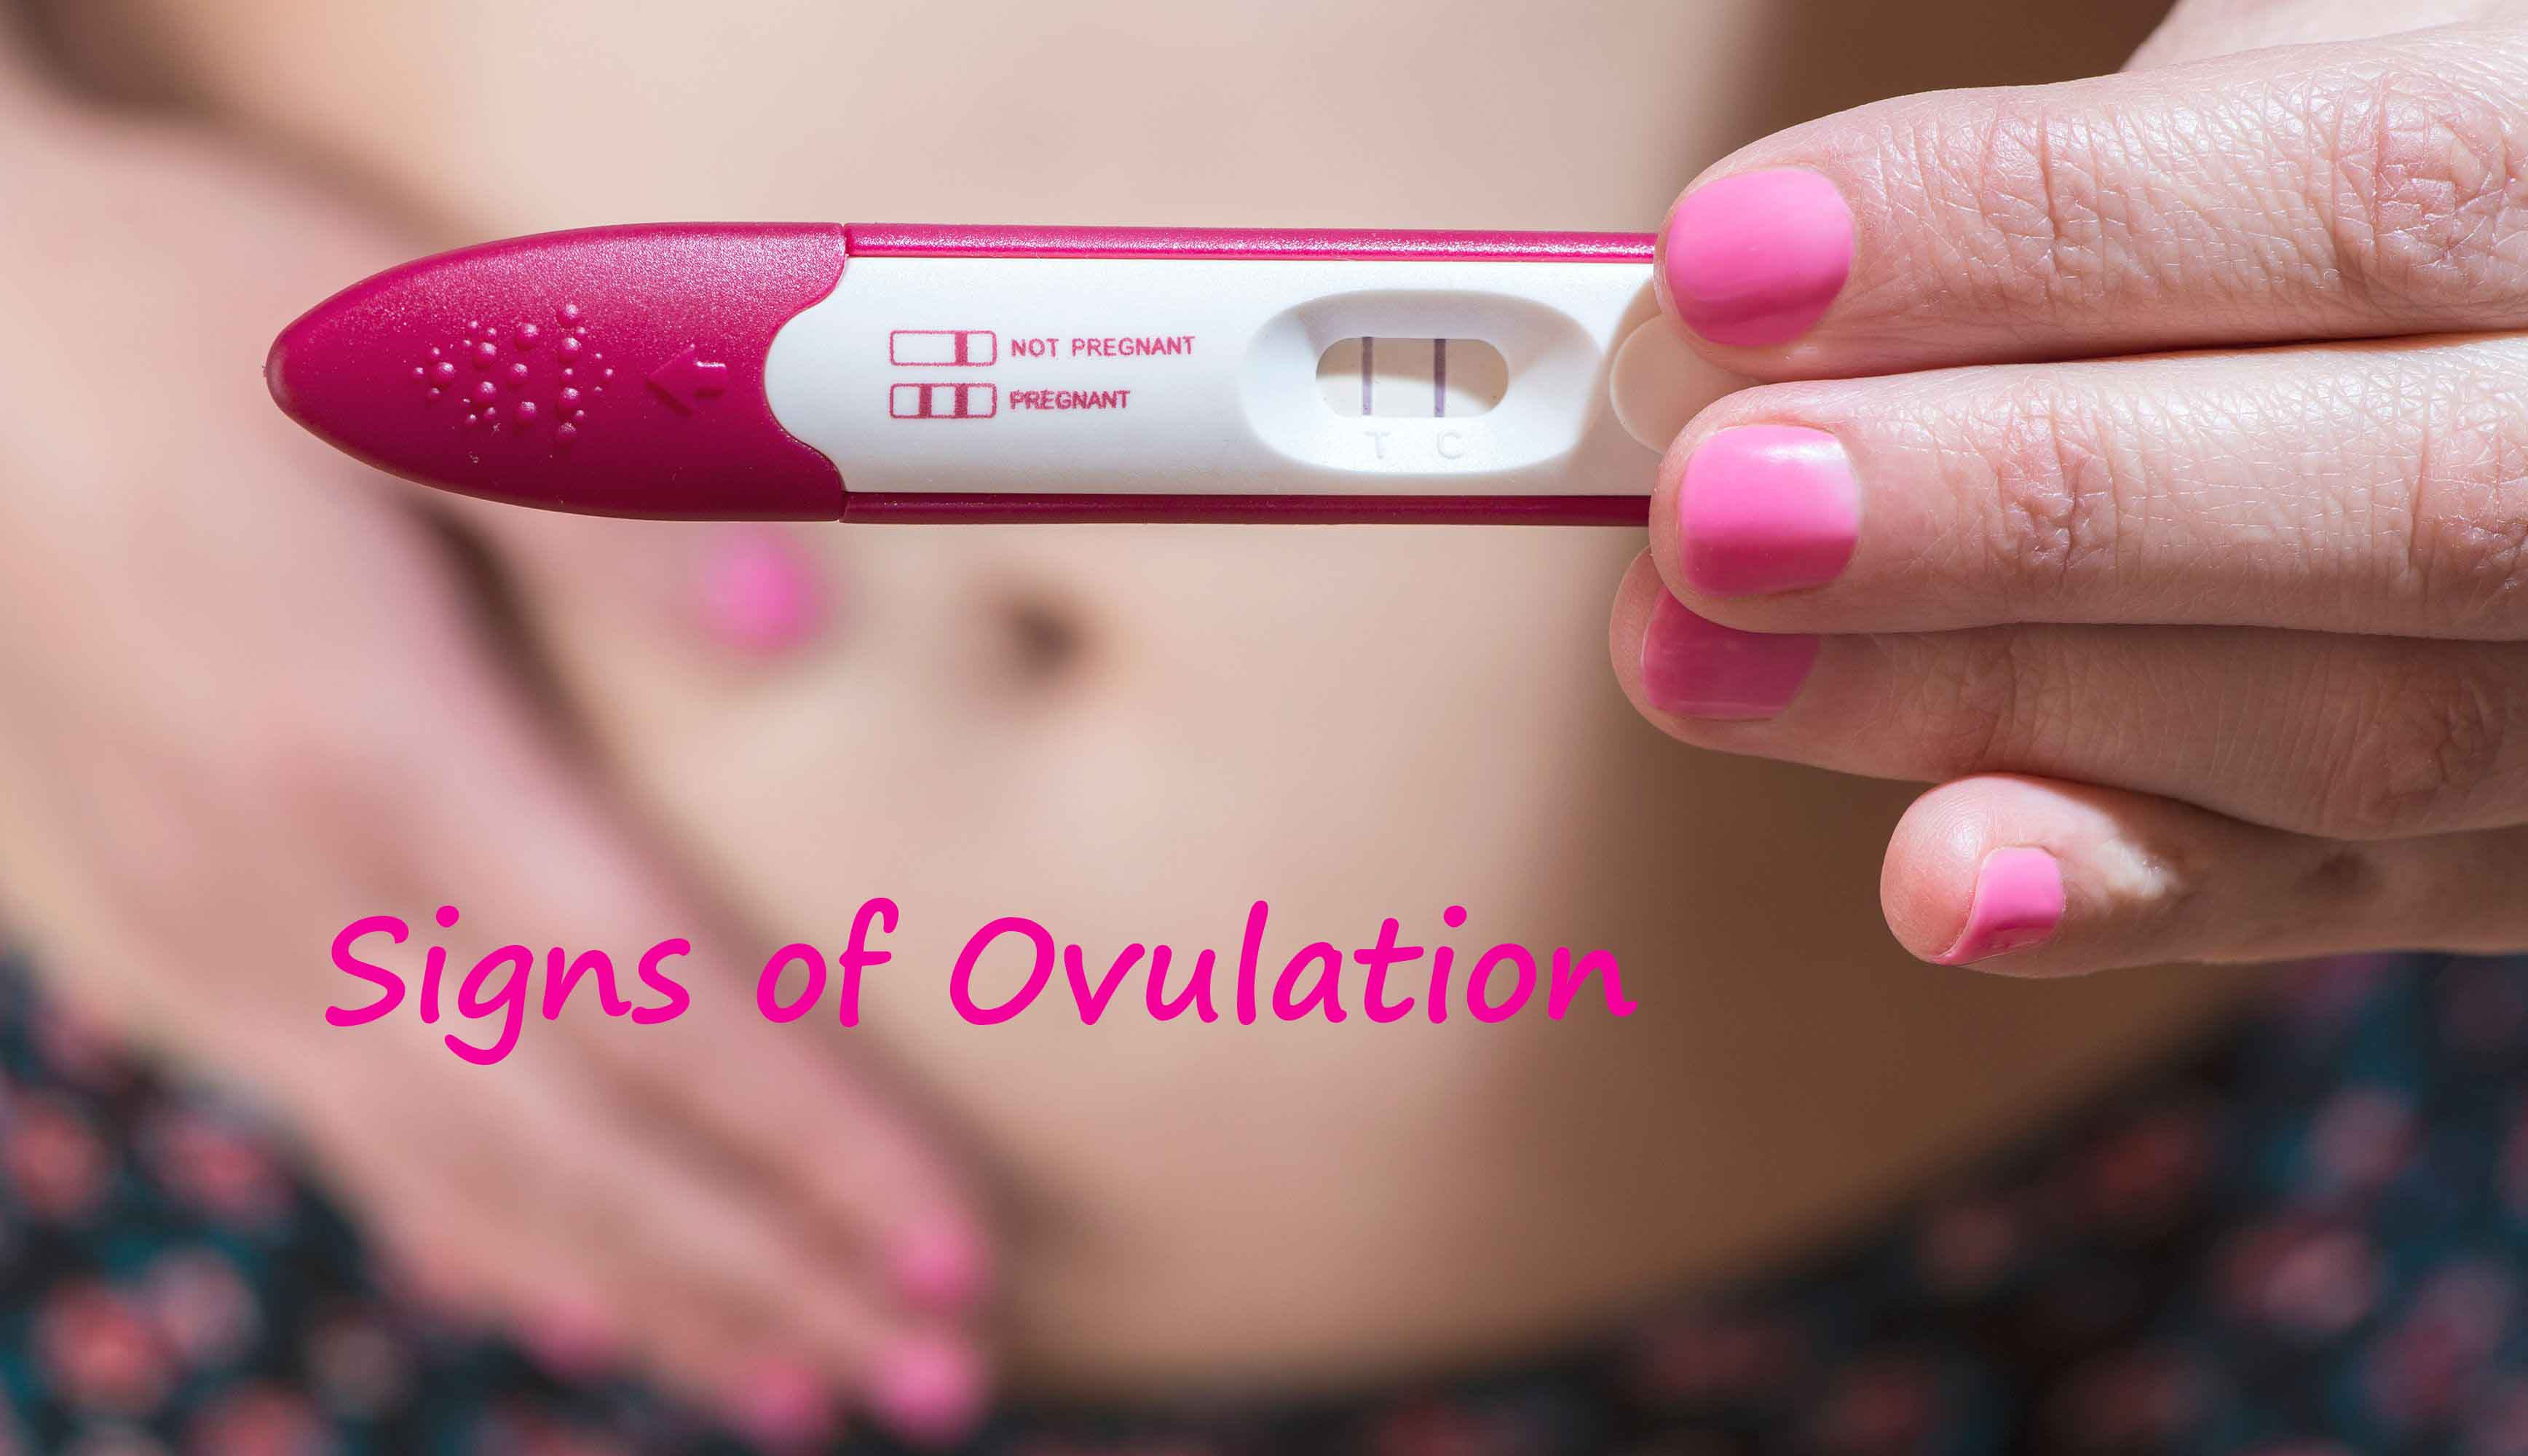 Signs of Ovulation | Symptoms Of Ovulation | Signs & Symptoms Of Ovulation